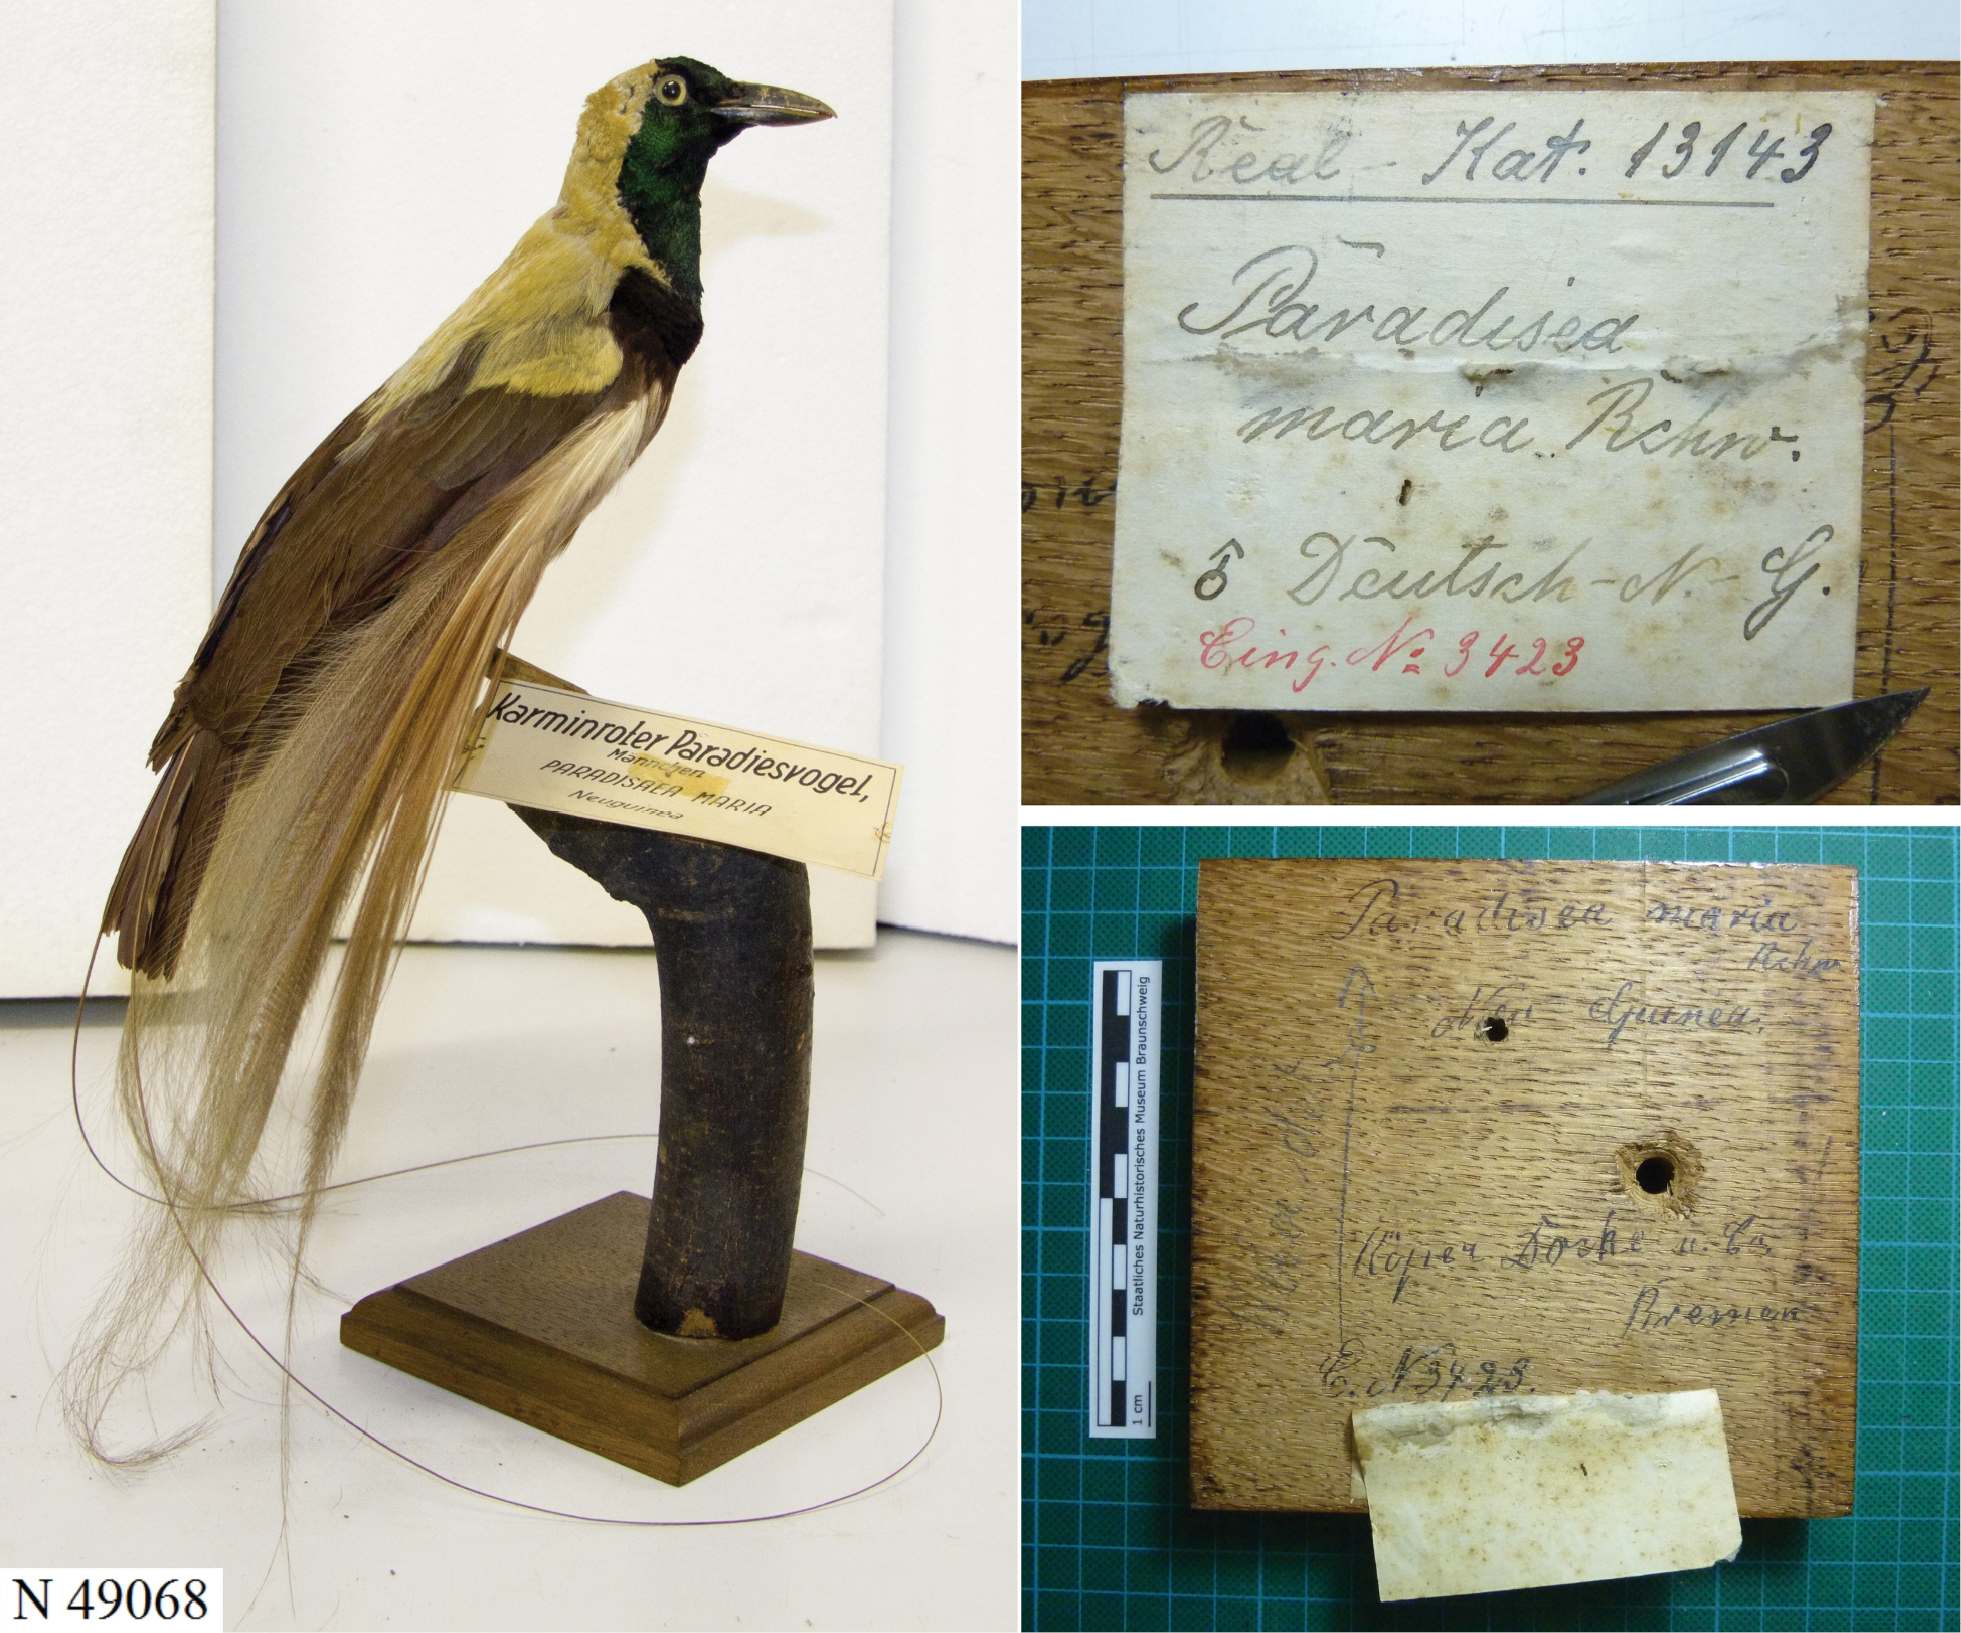 Discovery of a rare hybrid specimen known as Maria's bird of ... on